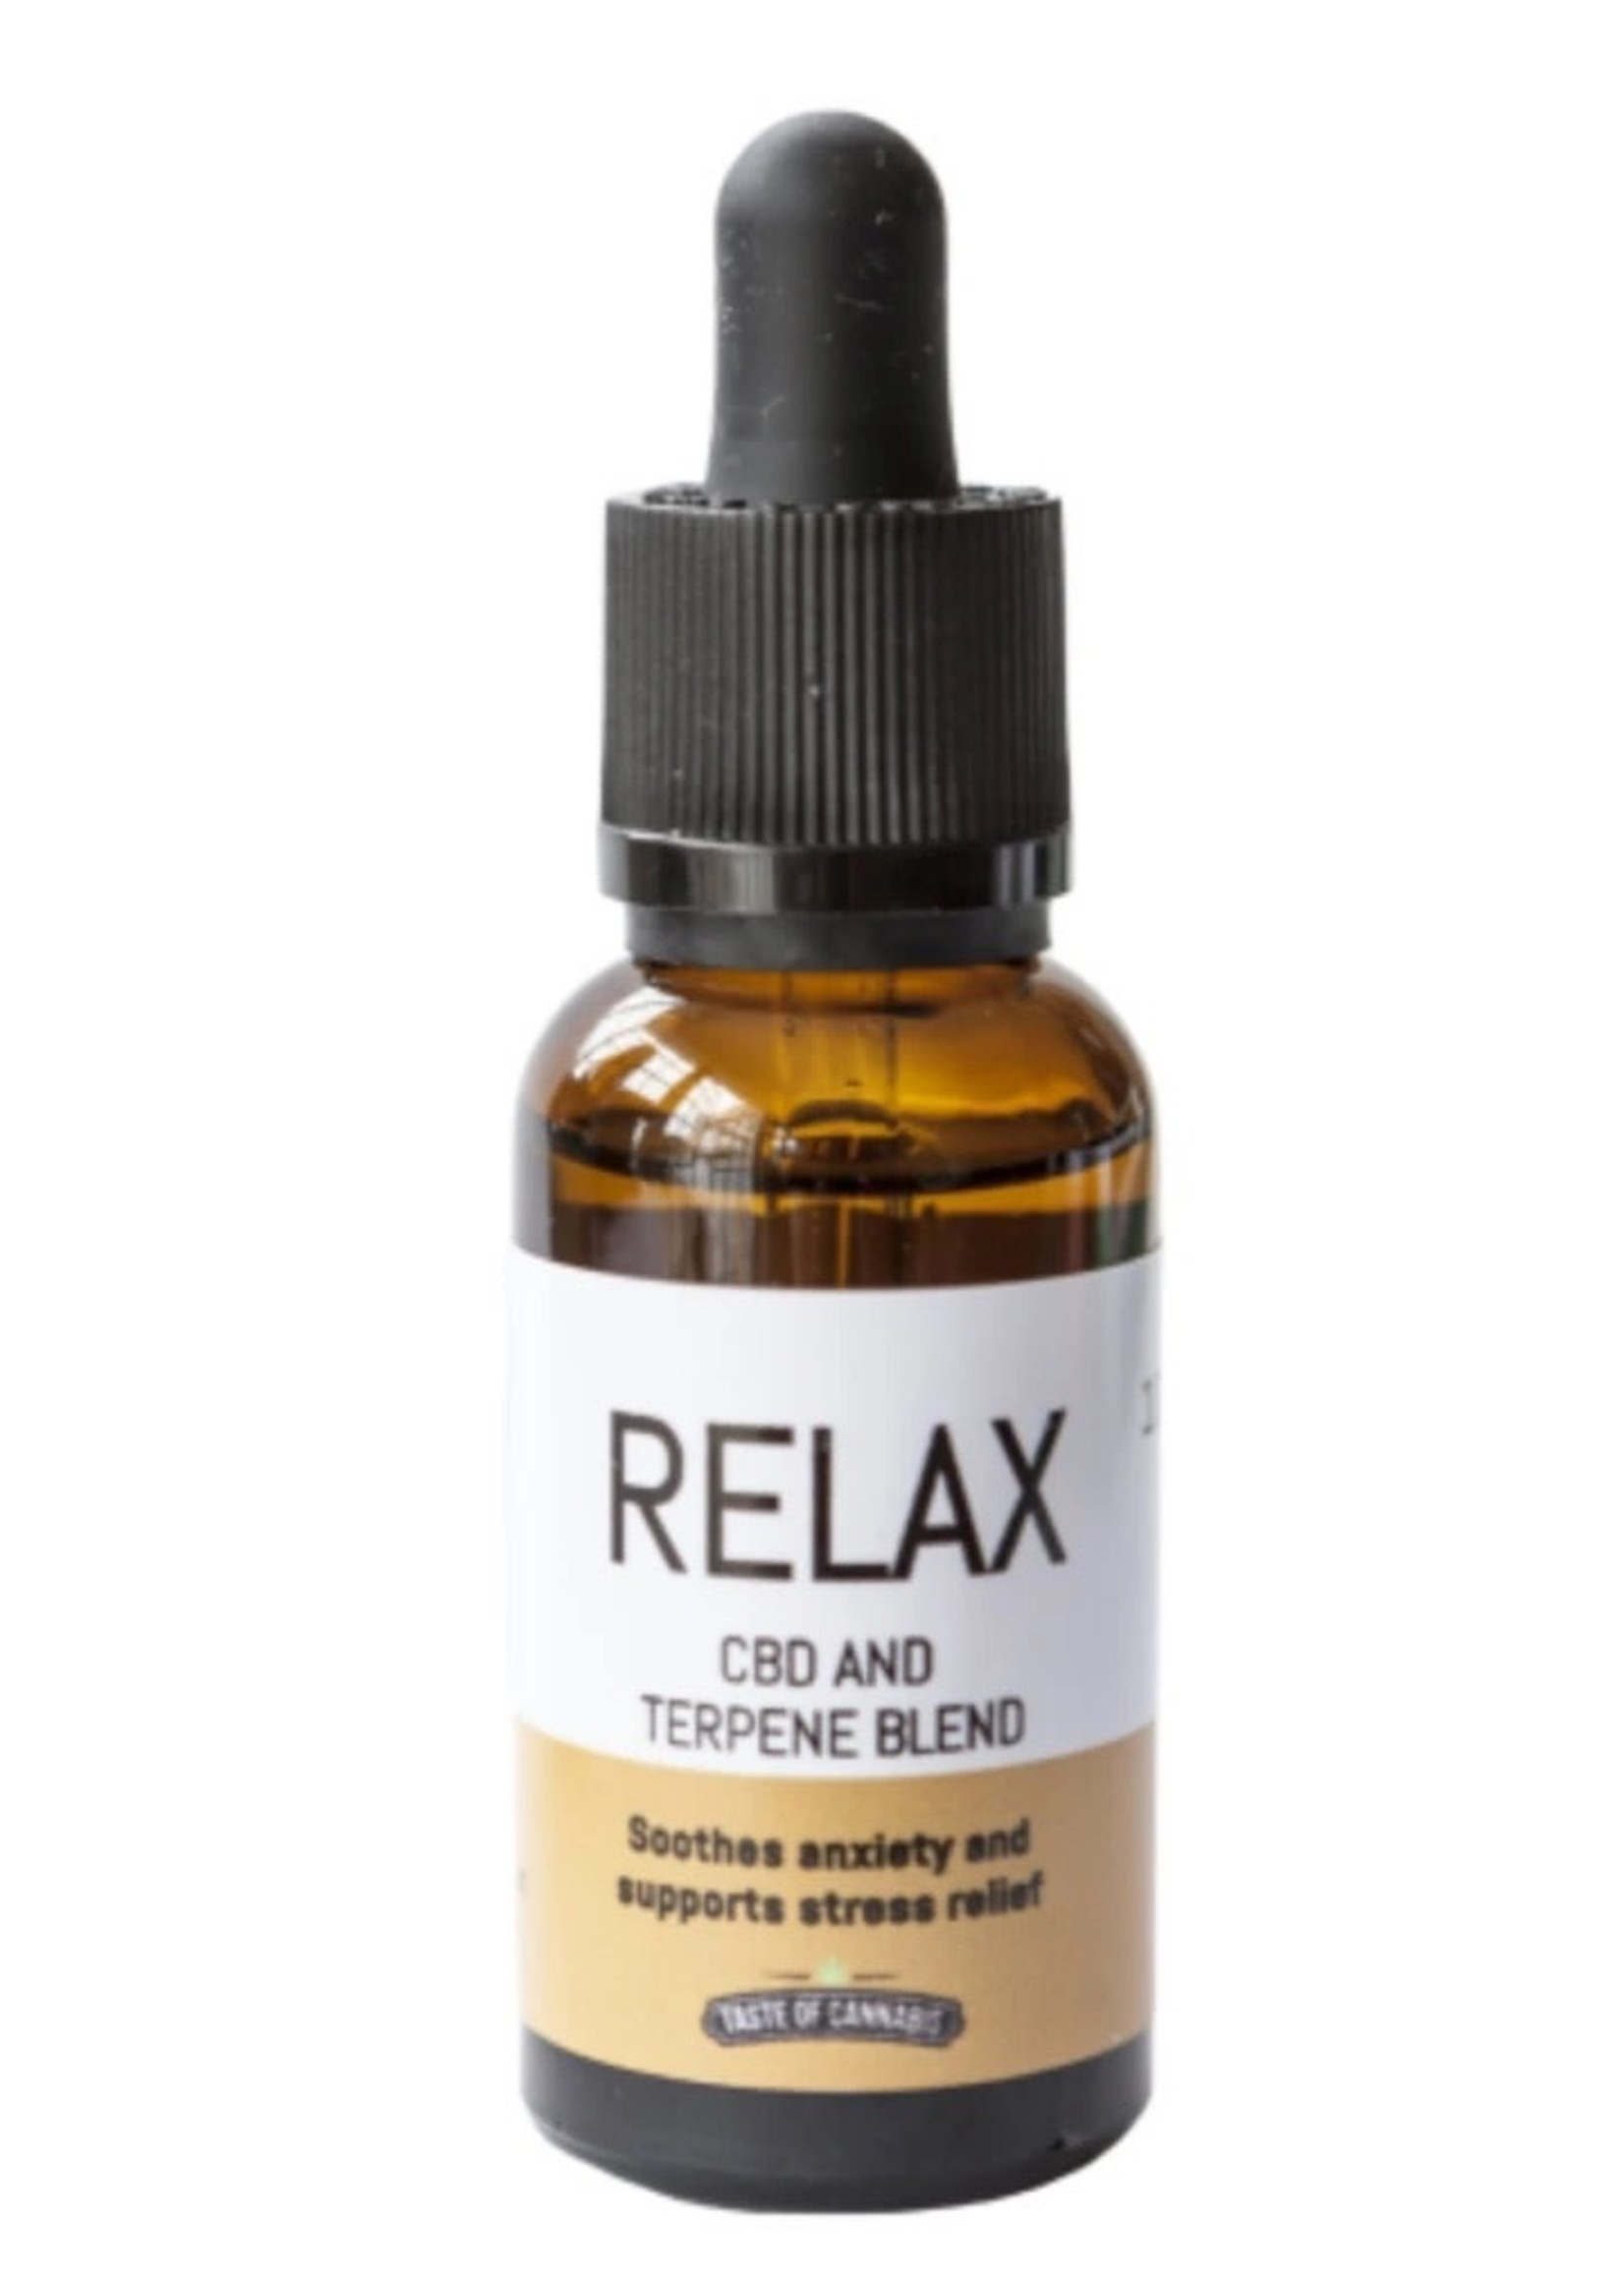 TOC CBD isolate oil - relax 600mg